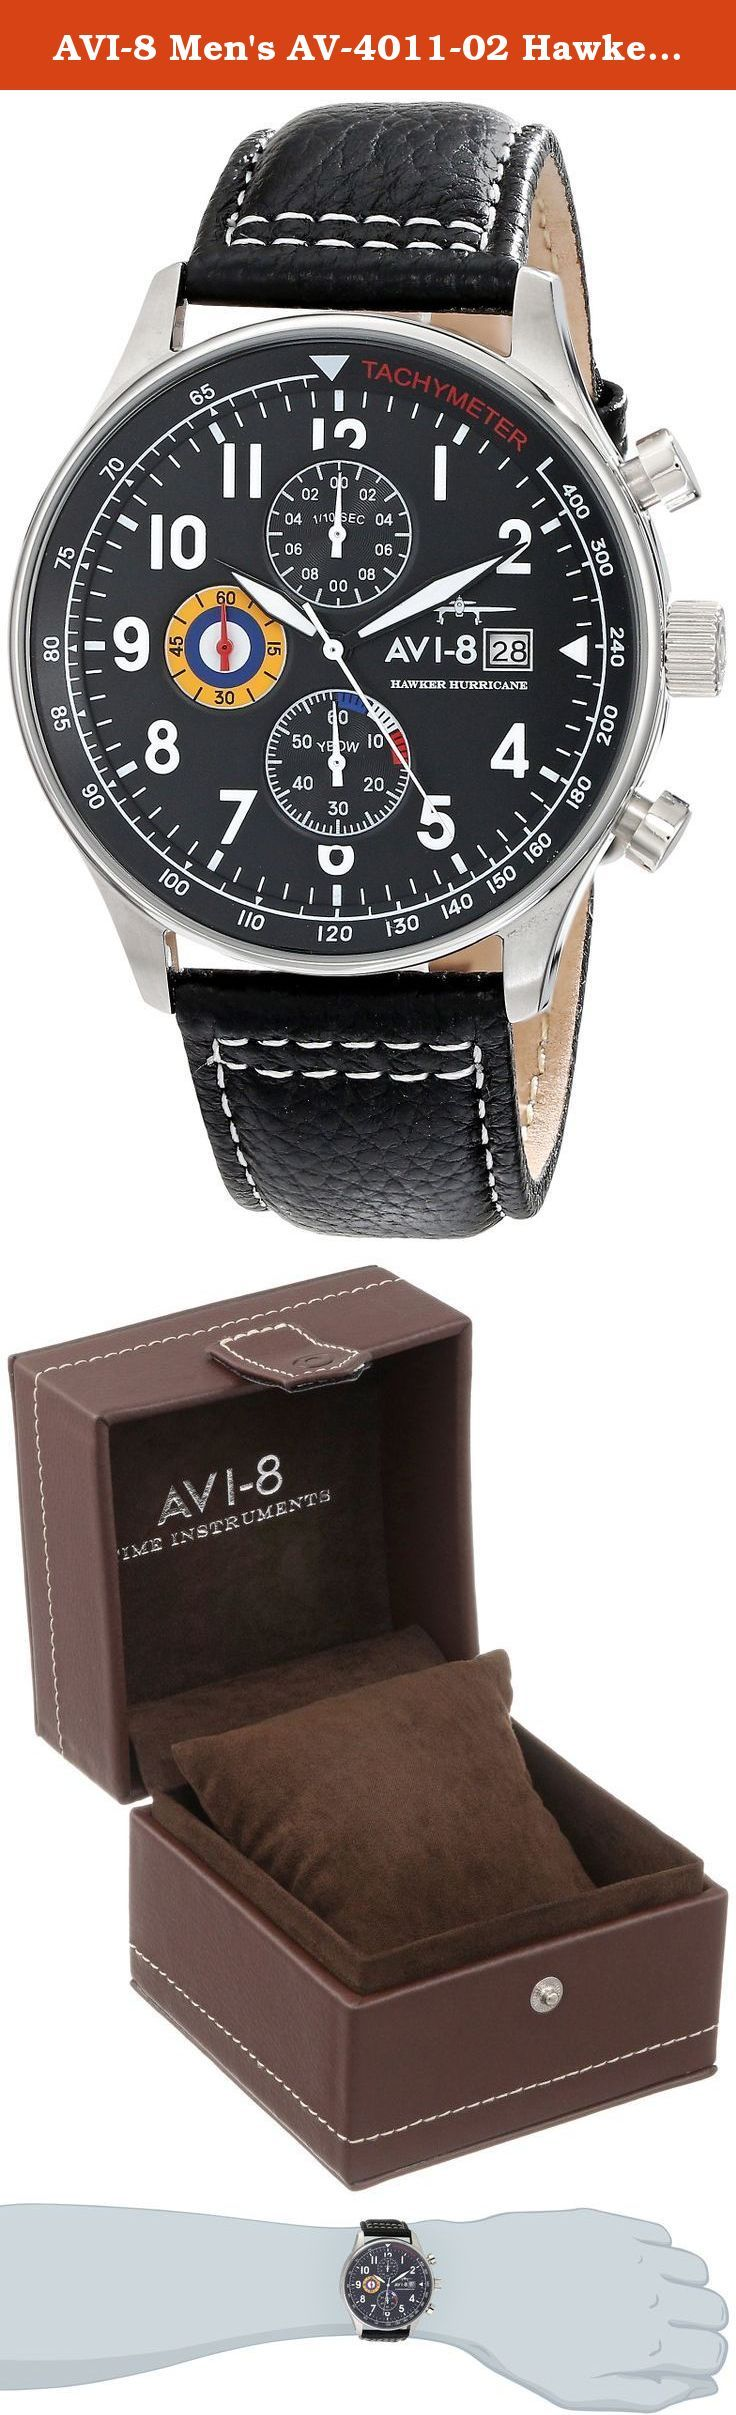 AVI-8 Men's AV-4011-02 Hawker Hurricane Stainless Steel Watch with Black Leather Band. Inspired by the unsung hero of the Battle of Britain, AVI-8 created the AV-4011 Hawker Hurricane Watch after that reliable Air Force fighter aircraft. The stainless steel housing material rests on a durable leather strap, which creates a rustic, timeless look. Mineral crystal displays the Japanese quartz analog movement and date indicator, and it securely closes with a buckle. This watch is also...